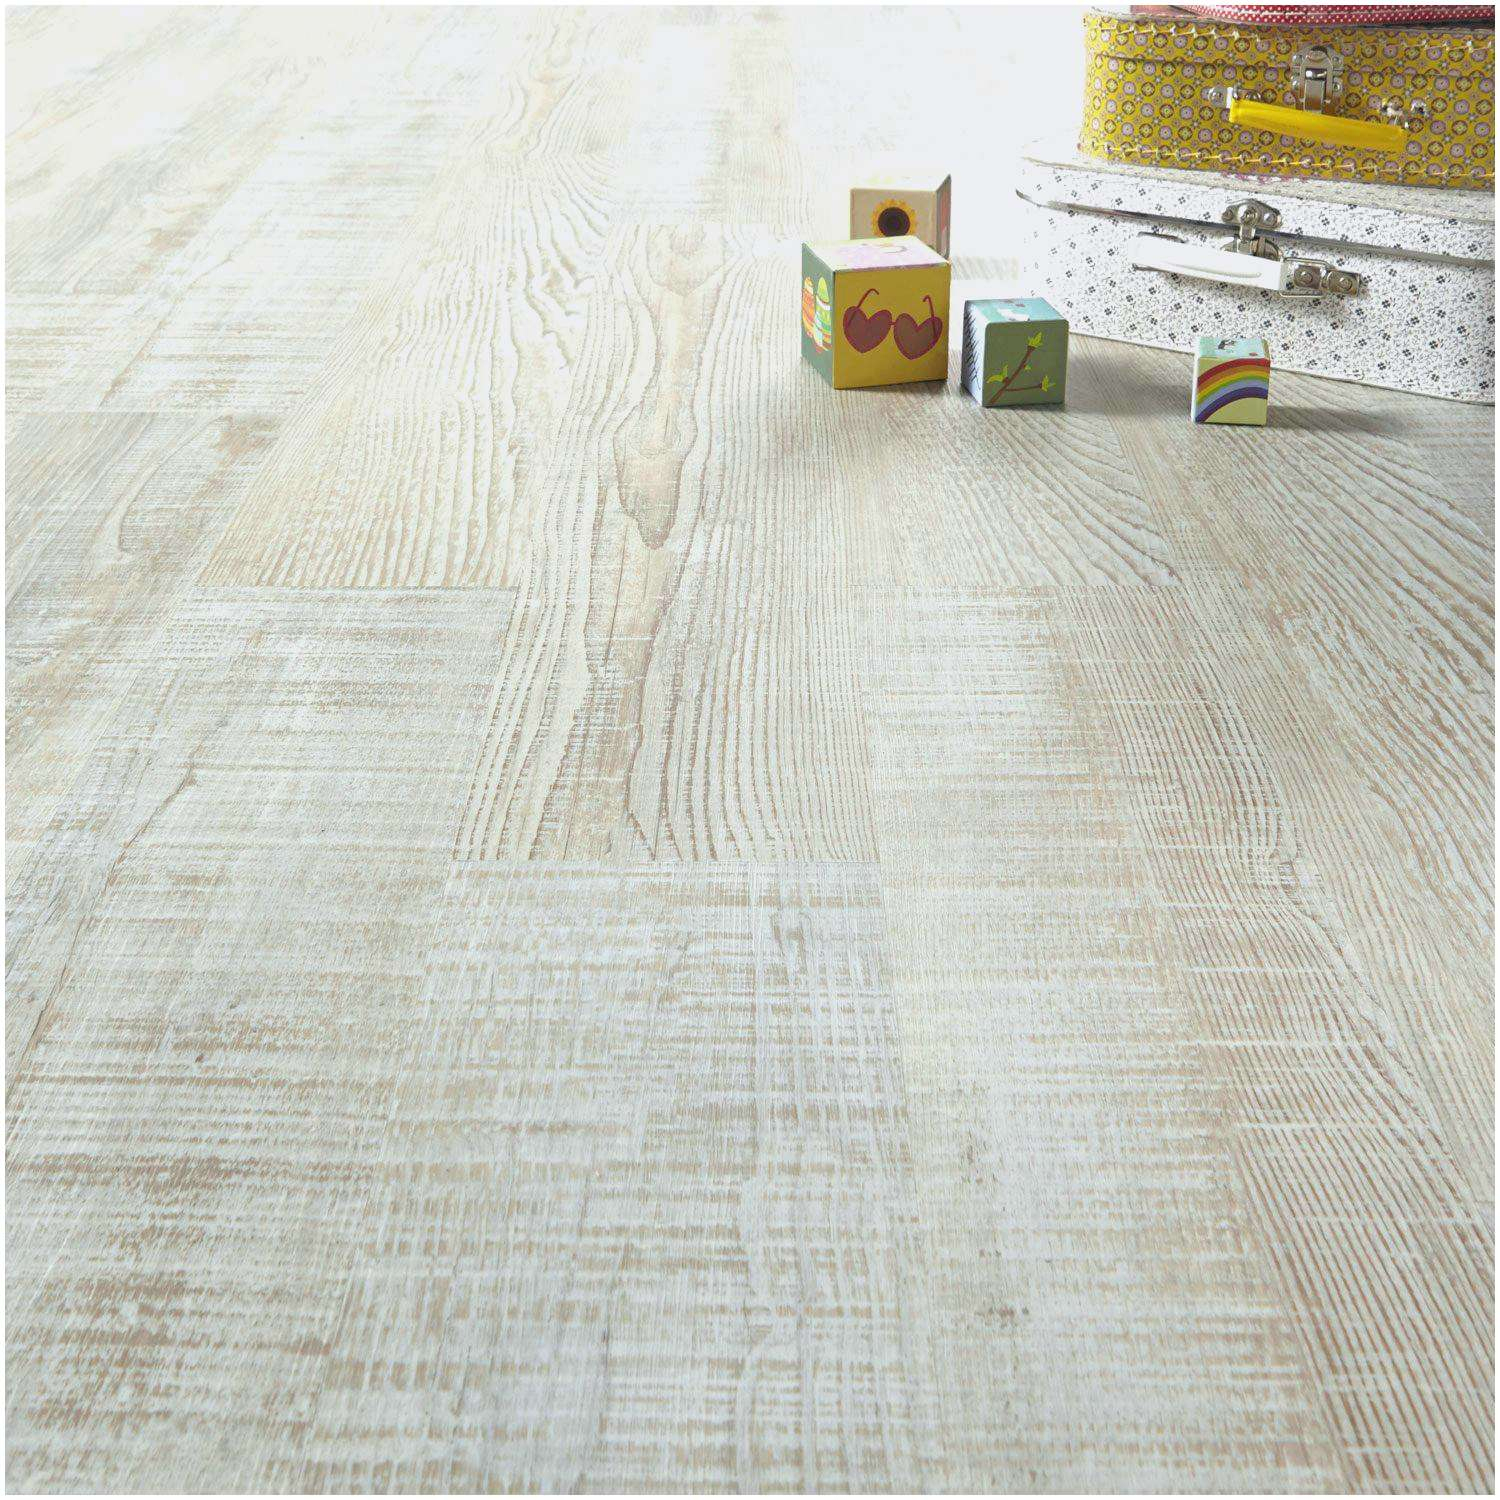 Parquet Flottant Salle De Bain Brico Depot Bright Shadow Pour Parquet Stratifie Cuisine Brico Depot Idees Conception Jardin Idees Conception Jardin